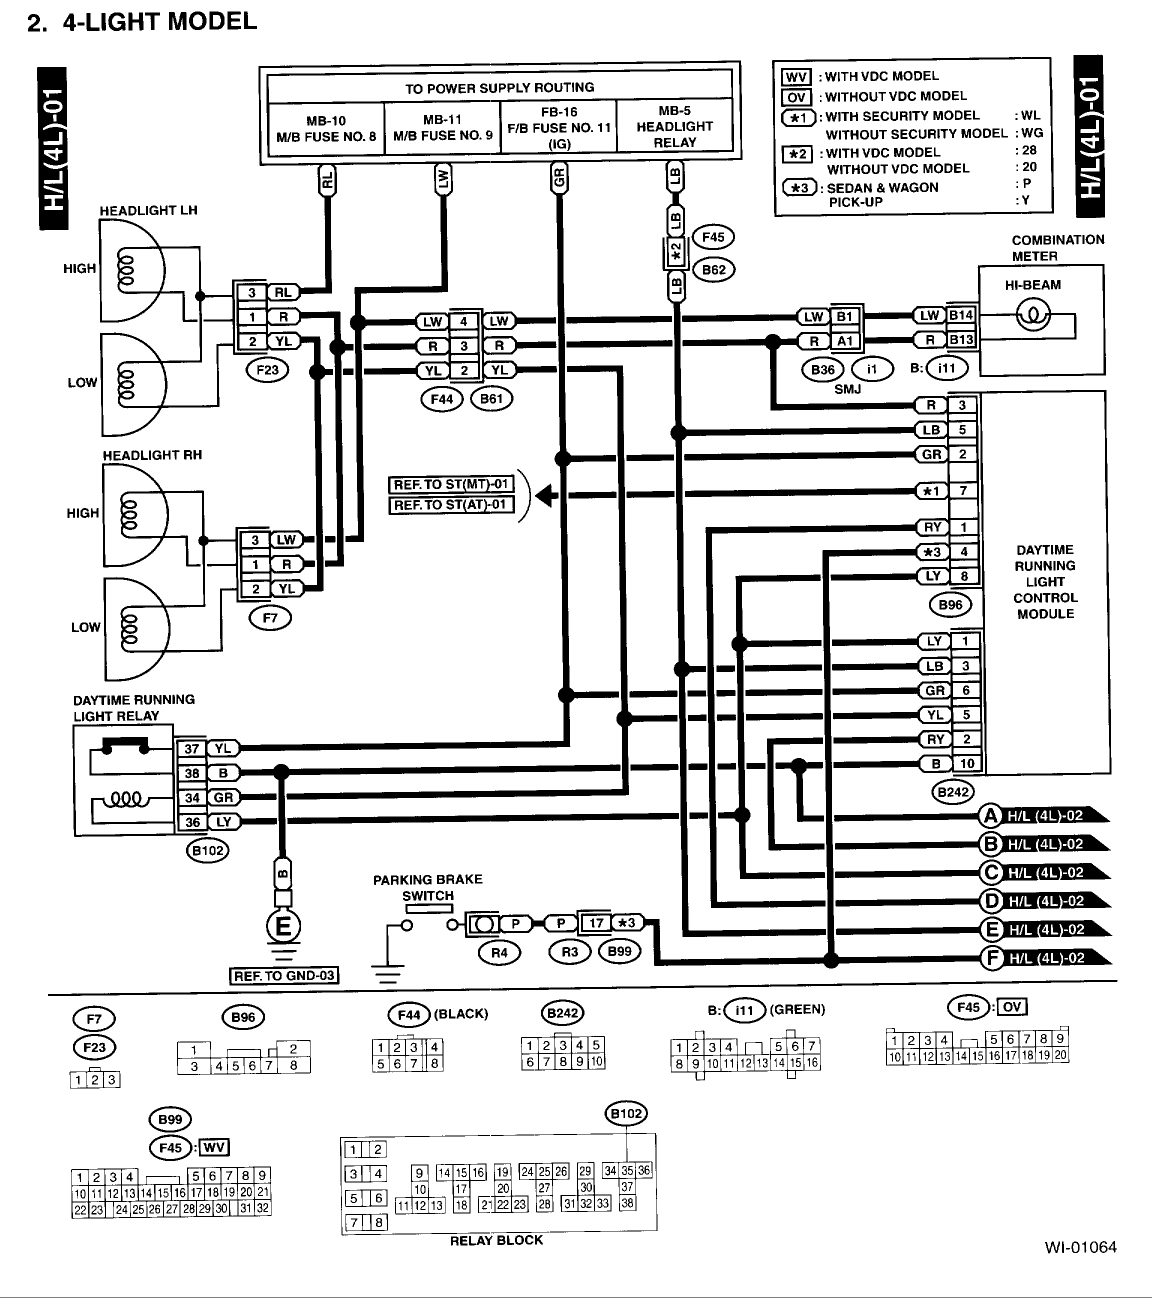 2010 Subaru Forester Wiring Schematic Wiring Diagram Meet Warehouse Meet Warehouse Pmov2019 It